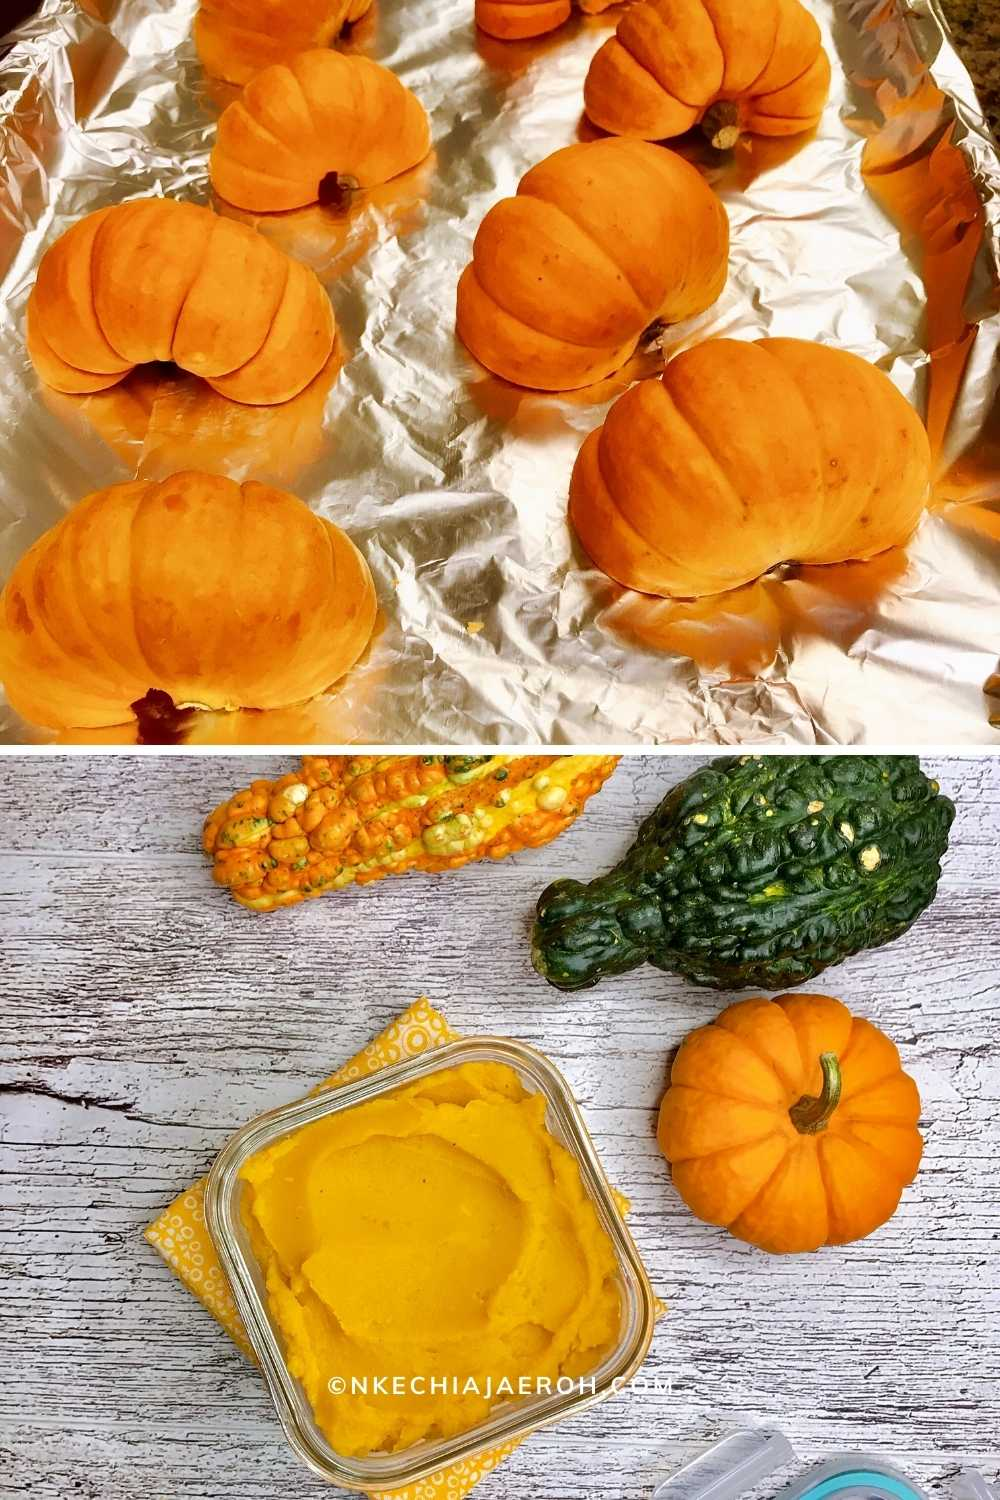 Pumpkin purée from small pumpkins. This purée was perfect for this pumpkin brownies